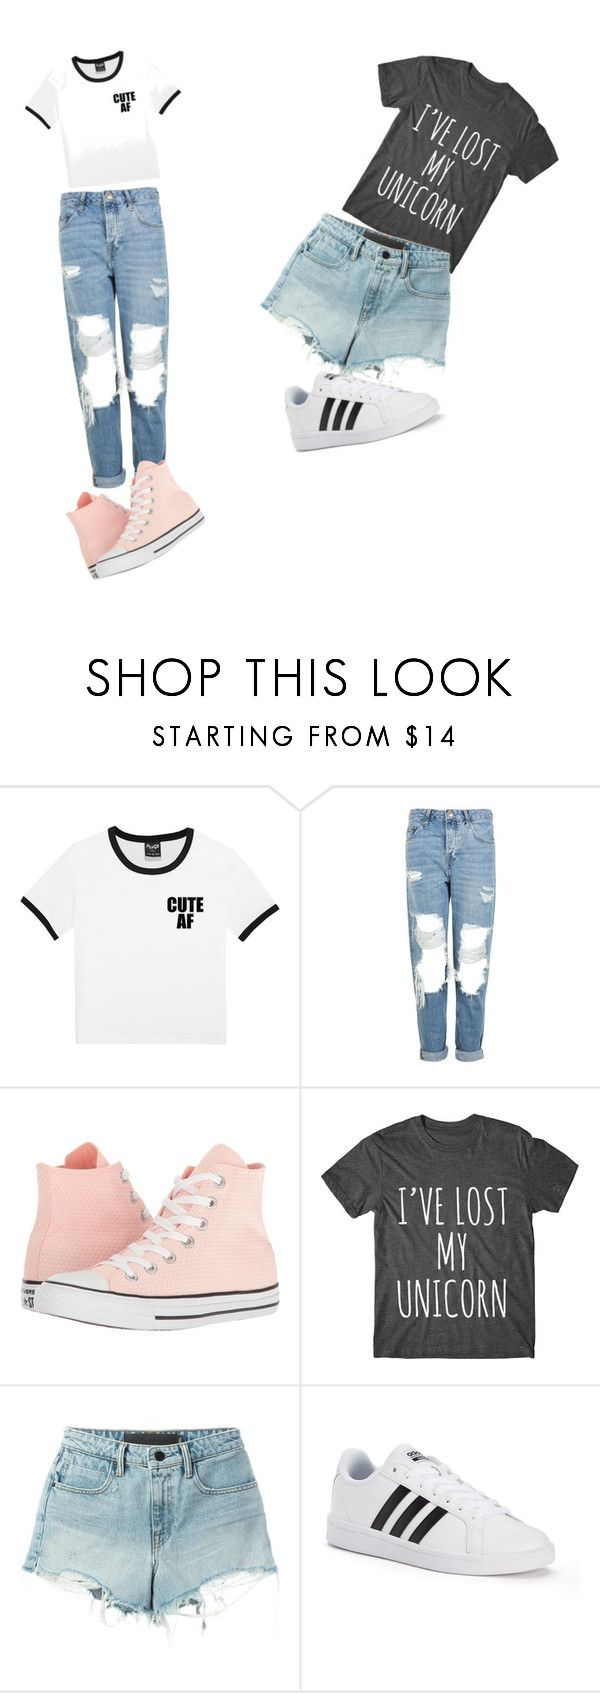 """Untitled #168"" by itsyofavbabymaci ❤ liked on Polyvore featuring Topshop, Converse, T By Alexander Wang and adidas"